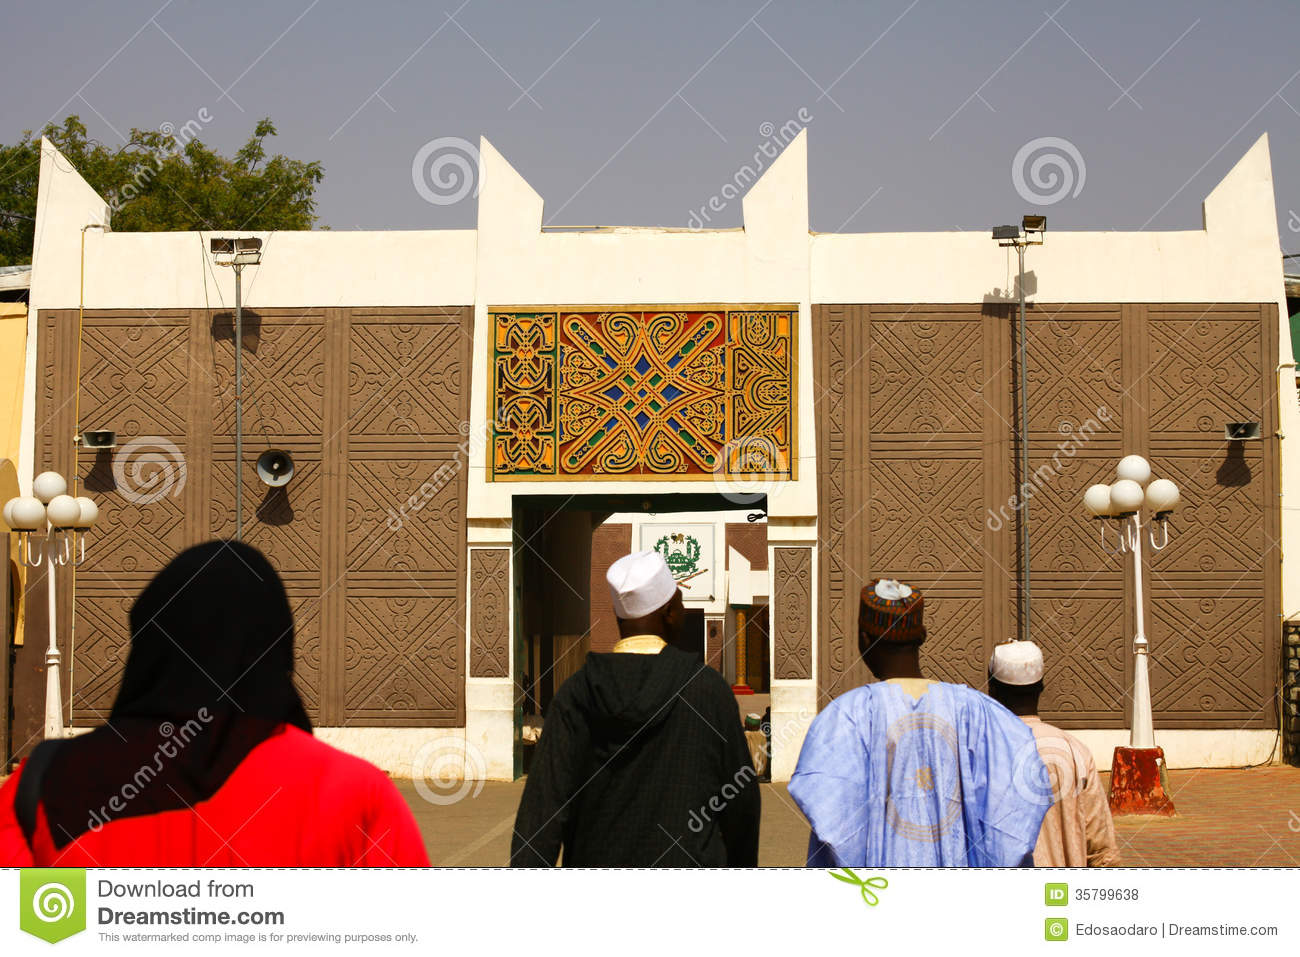 African palace gate